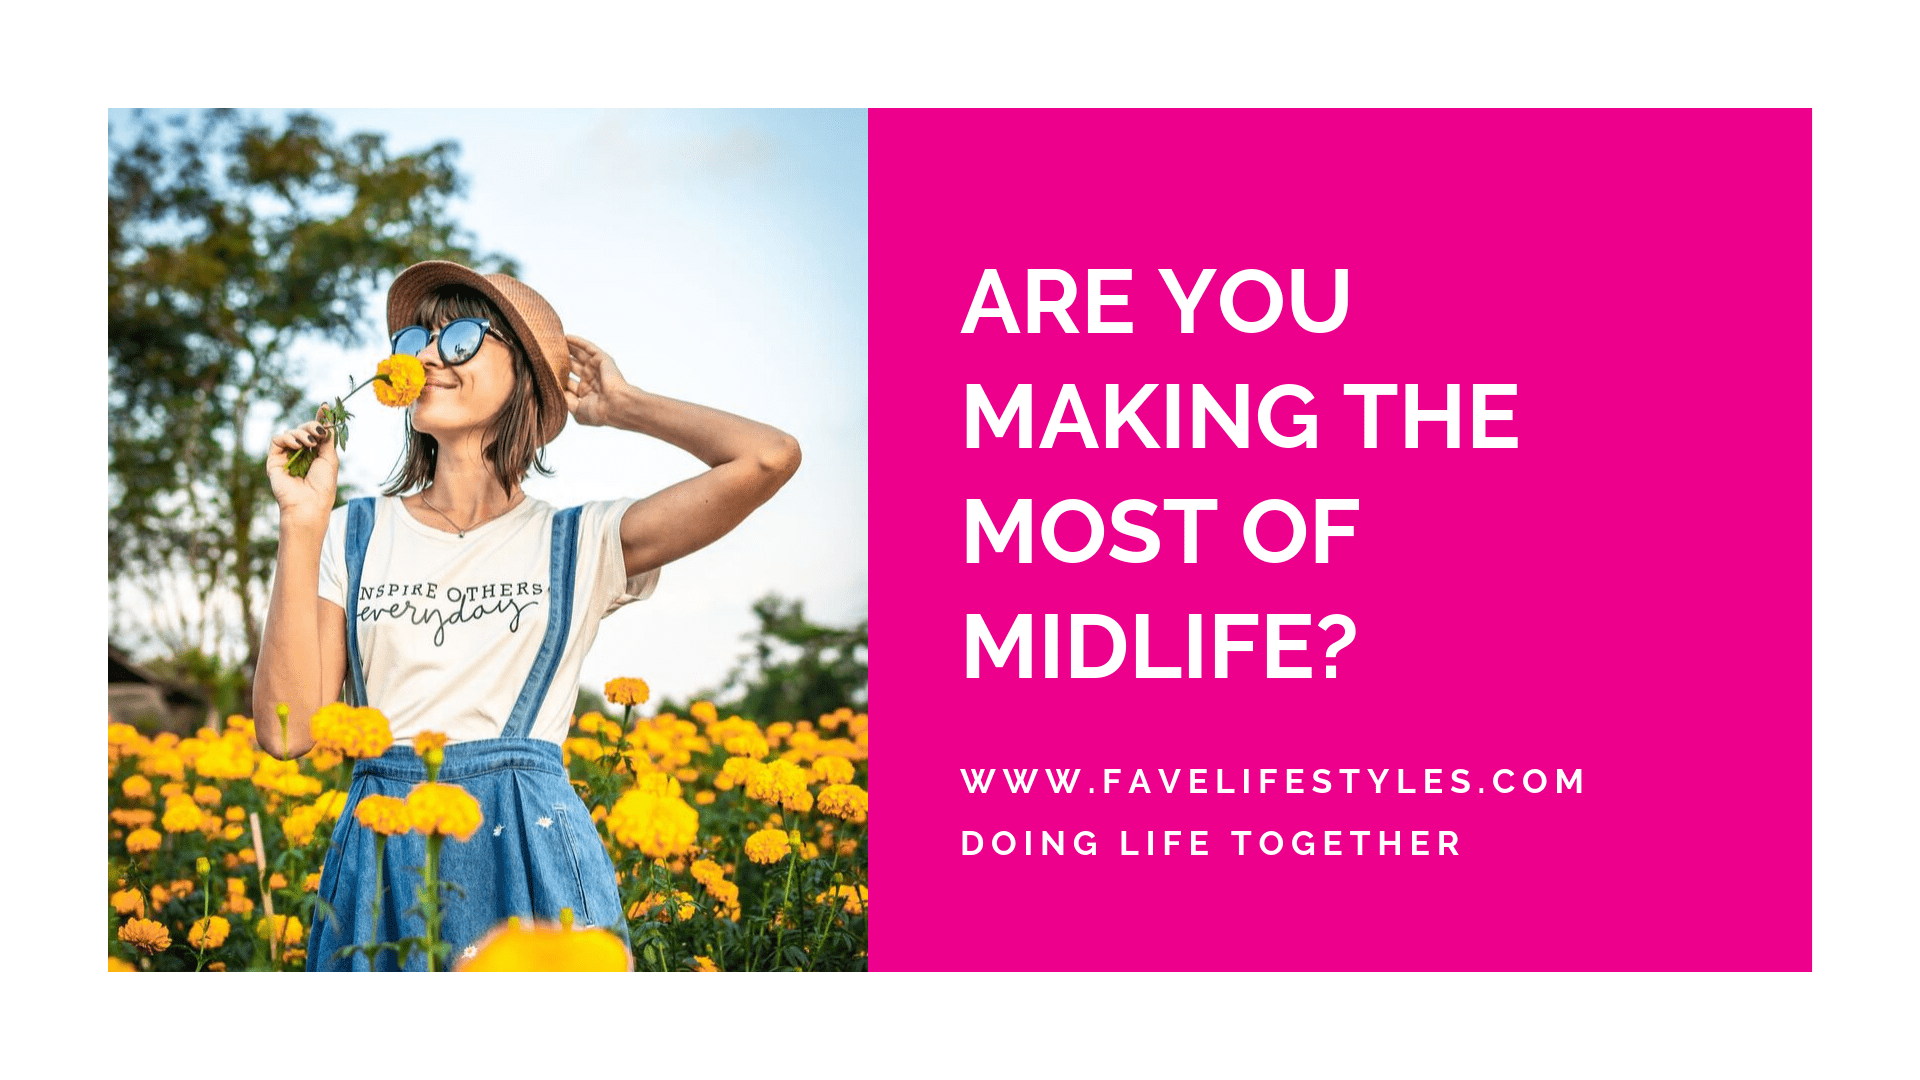 Are You Making the Most of Midlife?